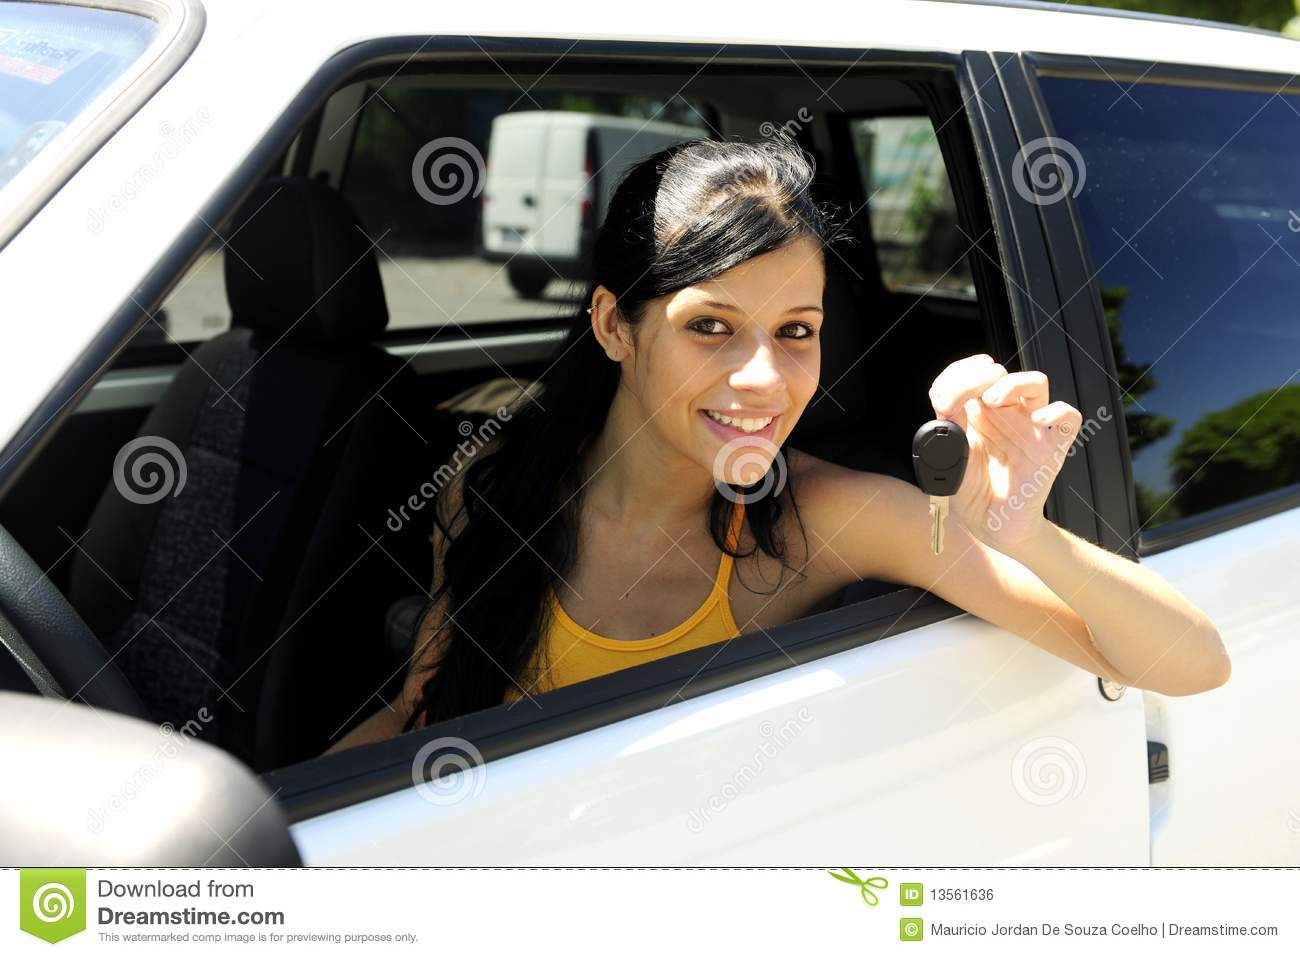 Car Insurance For Taxi Drivers